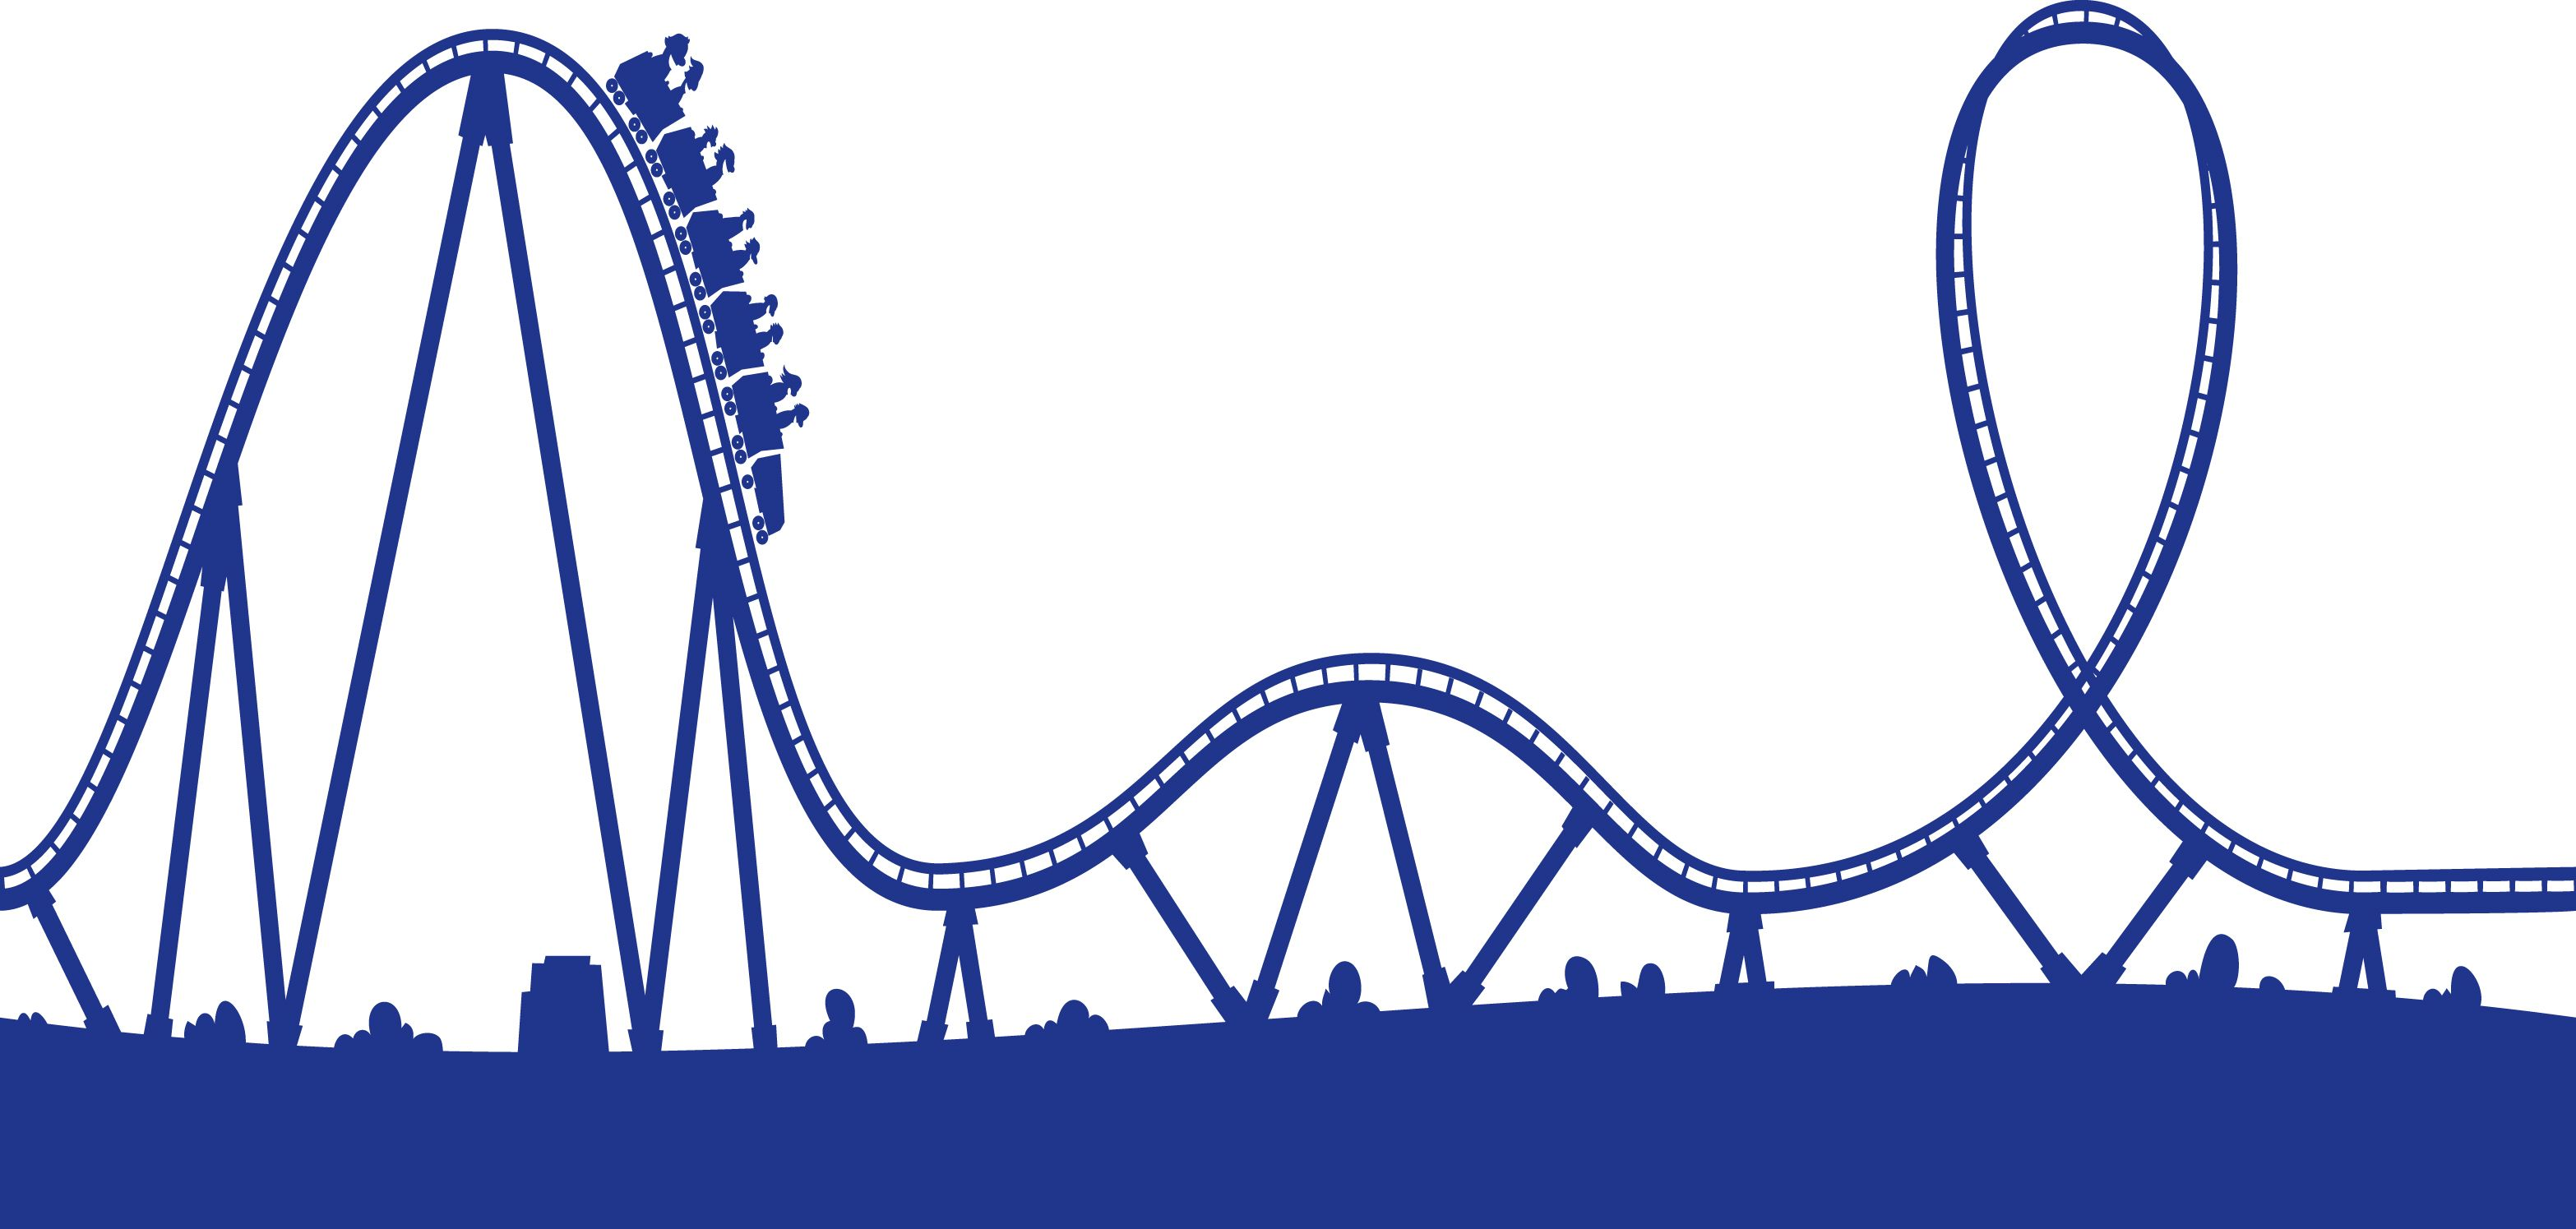 The Cryptocurrency Roller Coster.